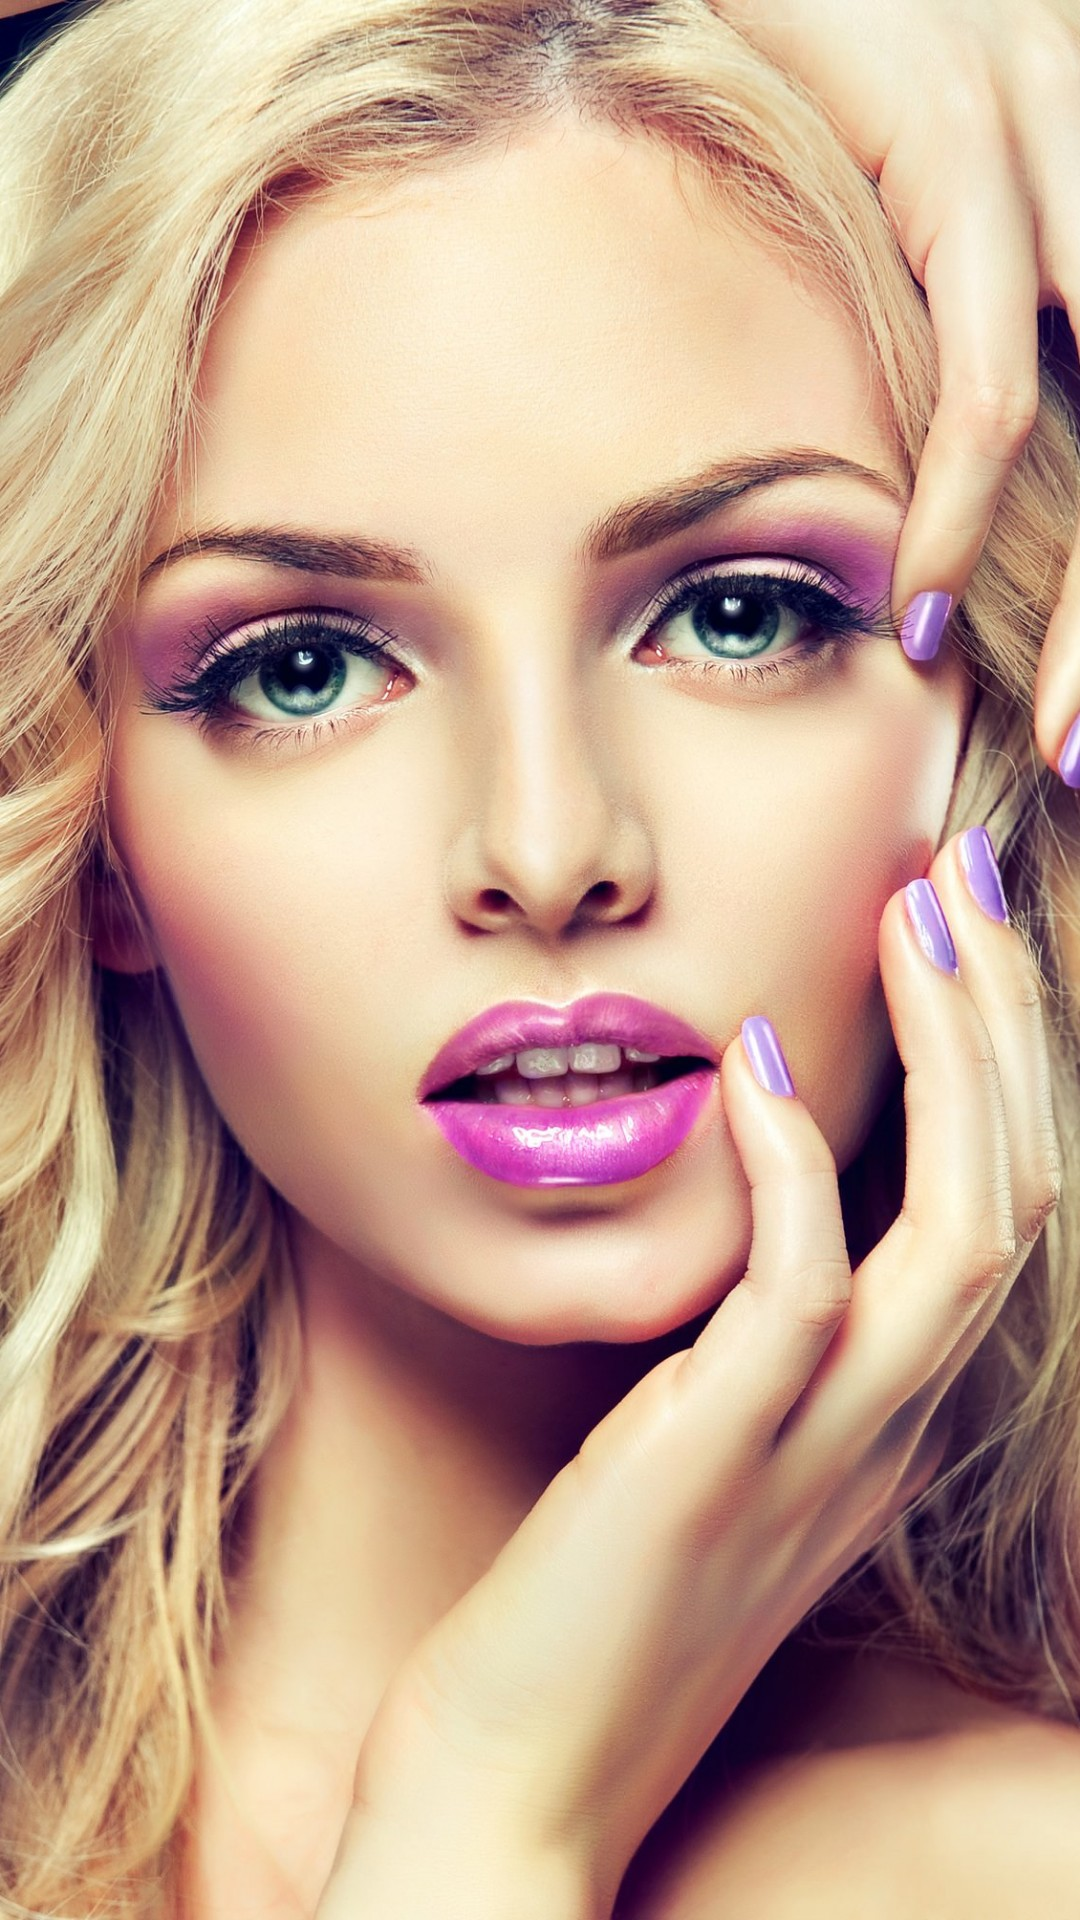 Beautiful Blonde Girl With Lilac Makeup Wallpaper for SONY Xperia Z2